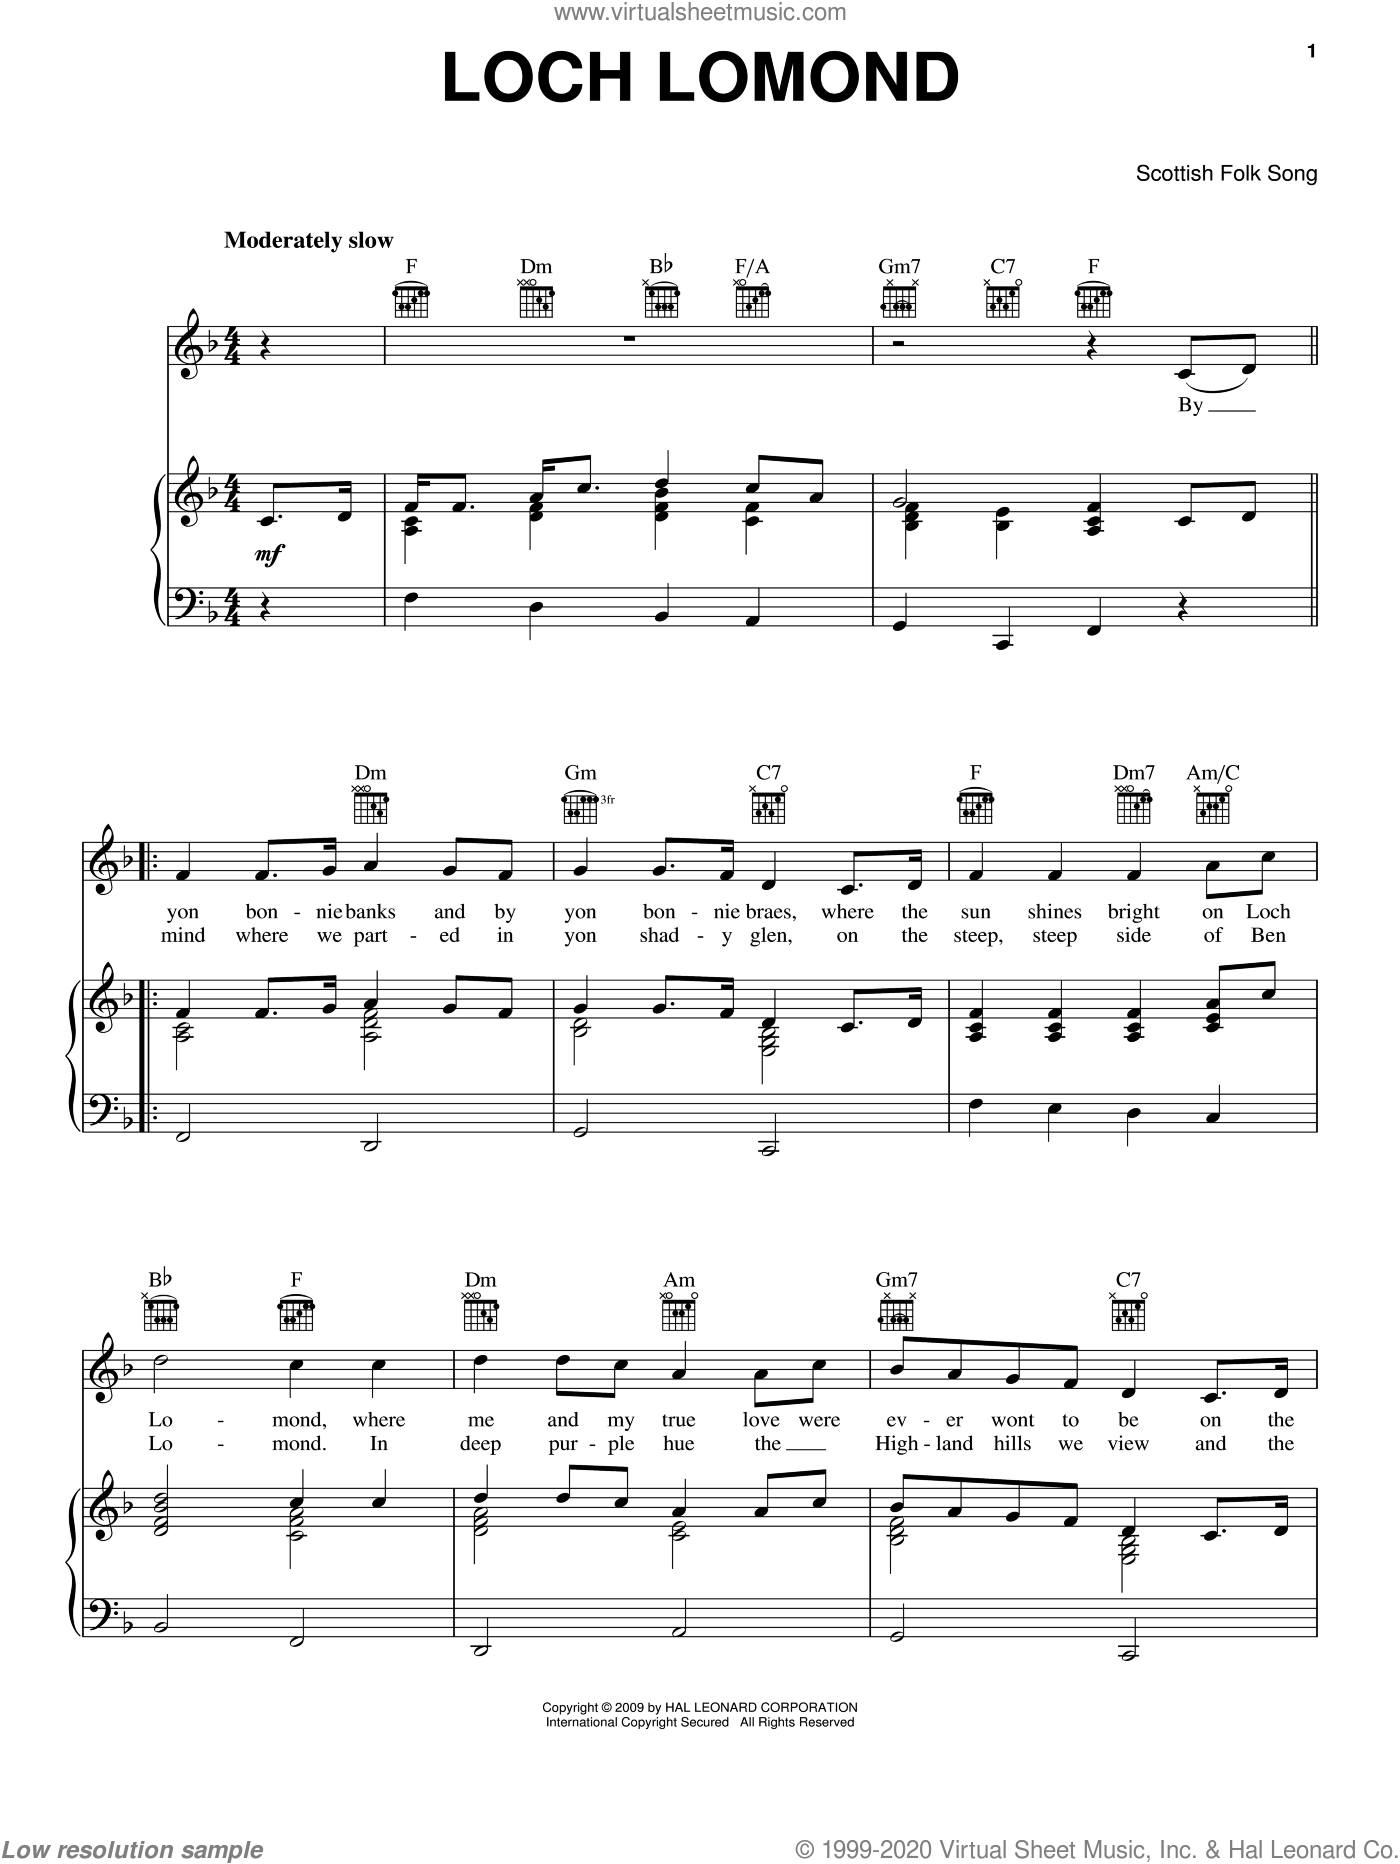 Loch Lomond sheet music for voice, piano or guitar. Score Image Preview.